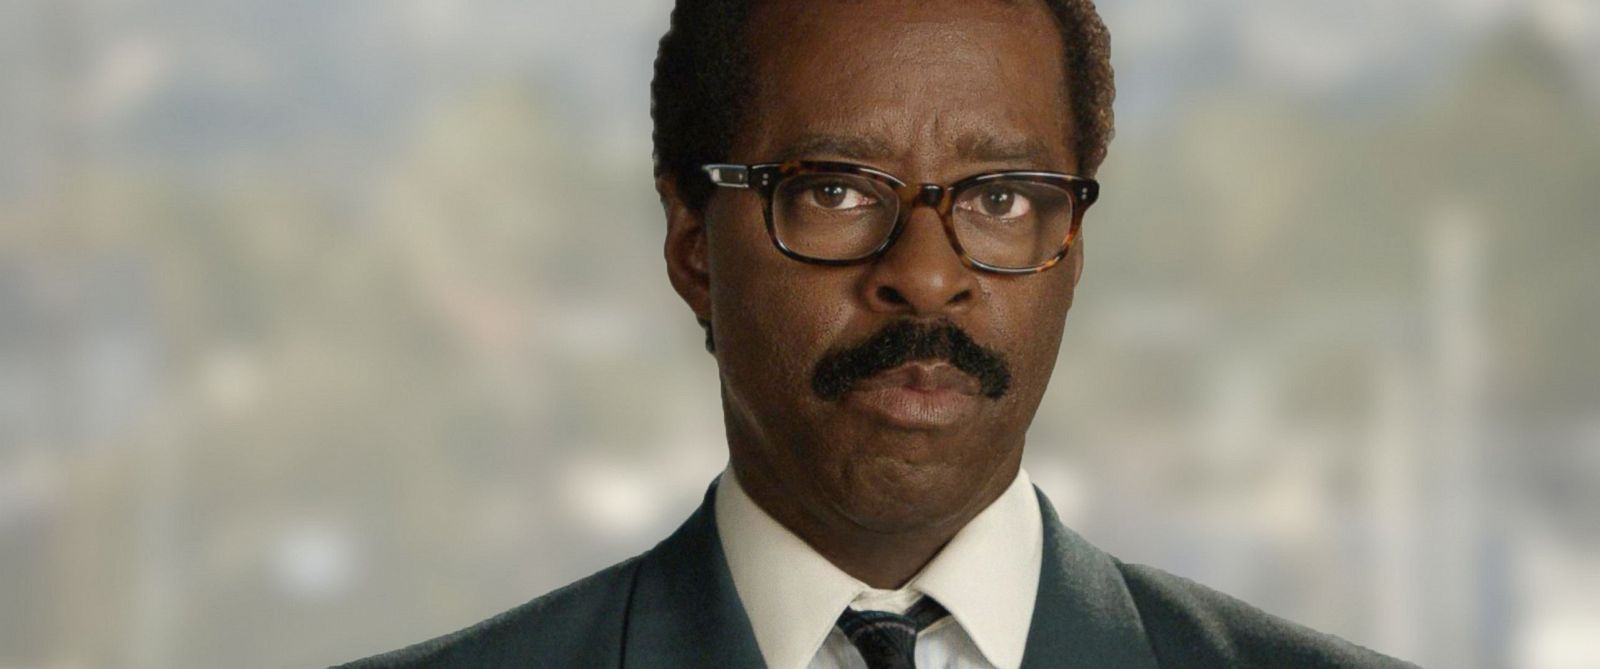 """PHOTO: Pictured is Courtney Vance as Johnnie Cochran in """"American Crime Story: The People v. O.J. Simpson."""""""